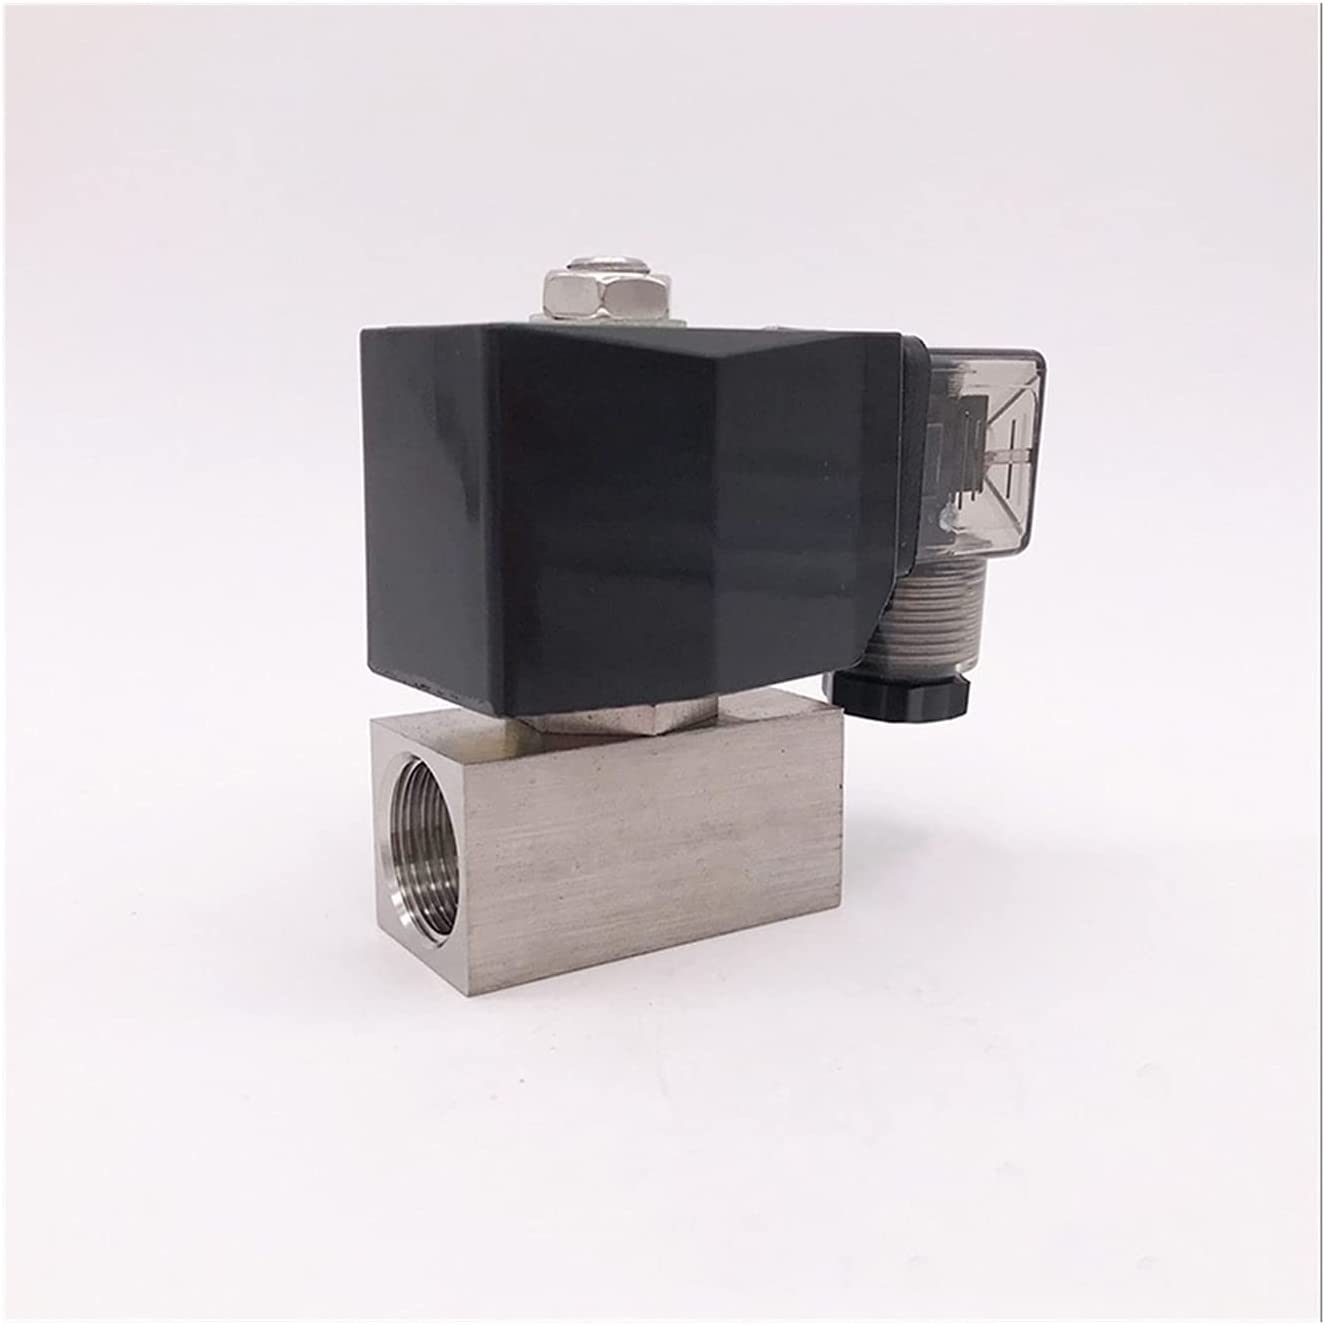 BAIJIAXIUSHANG-TIES Valves Fittings Solenoid DC12 2inch 1 Valve Detroit Manufacturer direct delivery Mall